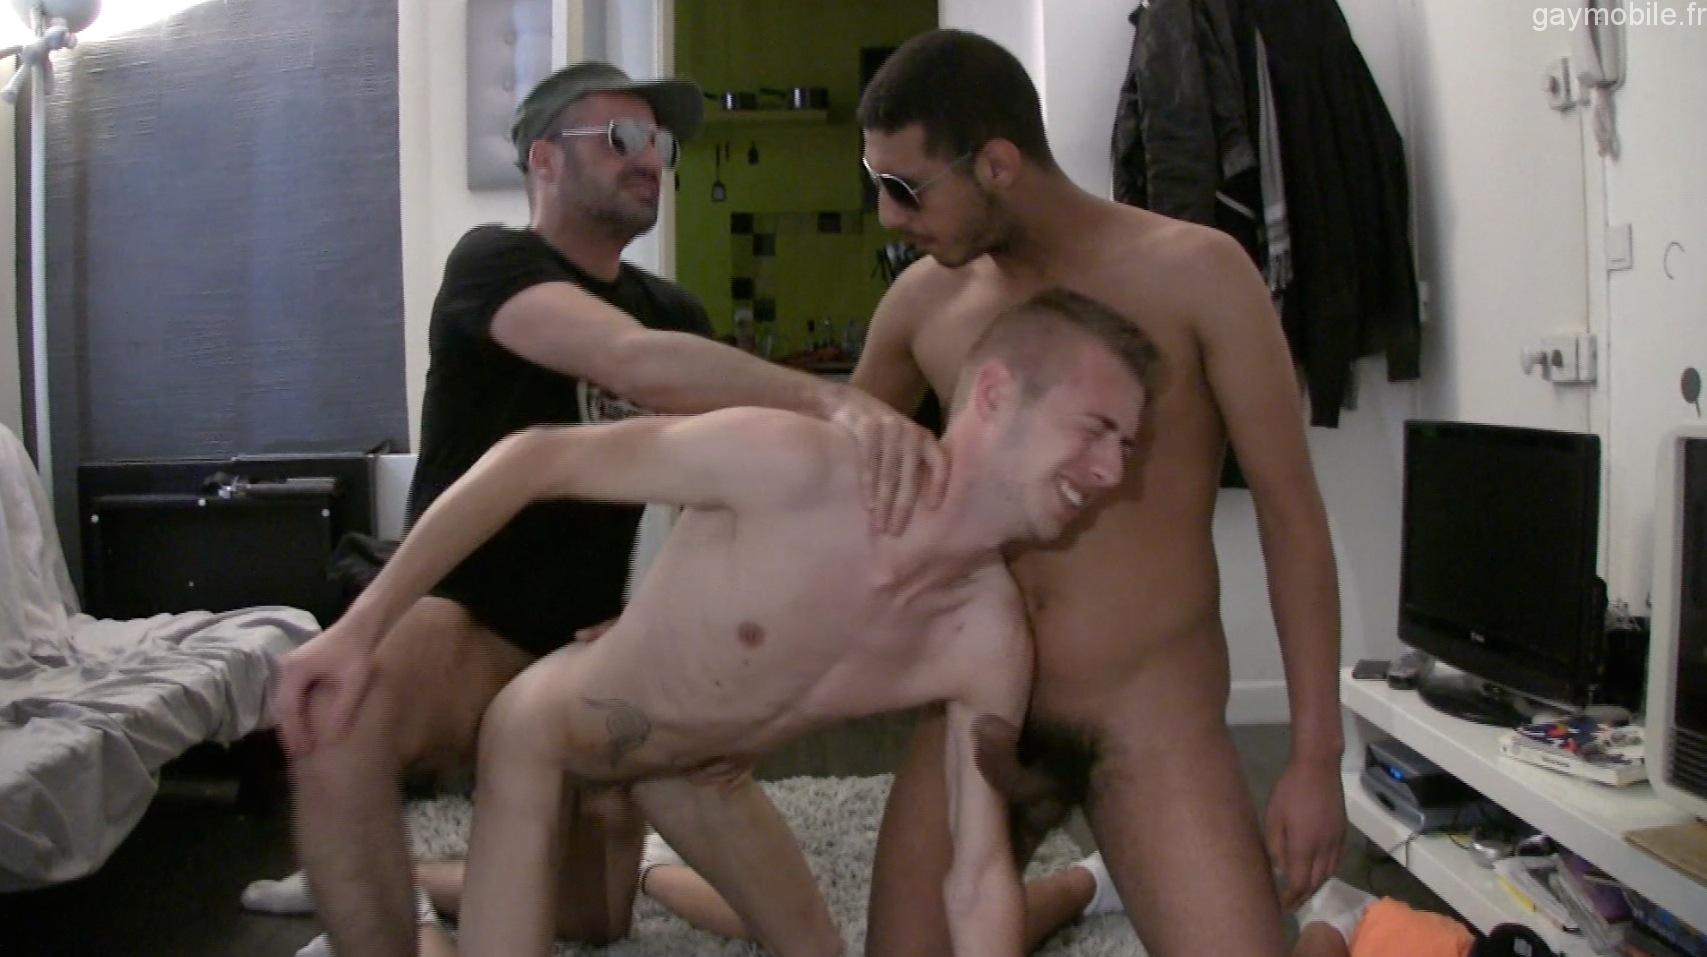 partouze gay paris beur minet